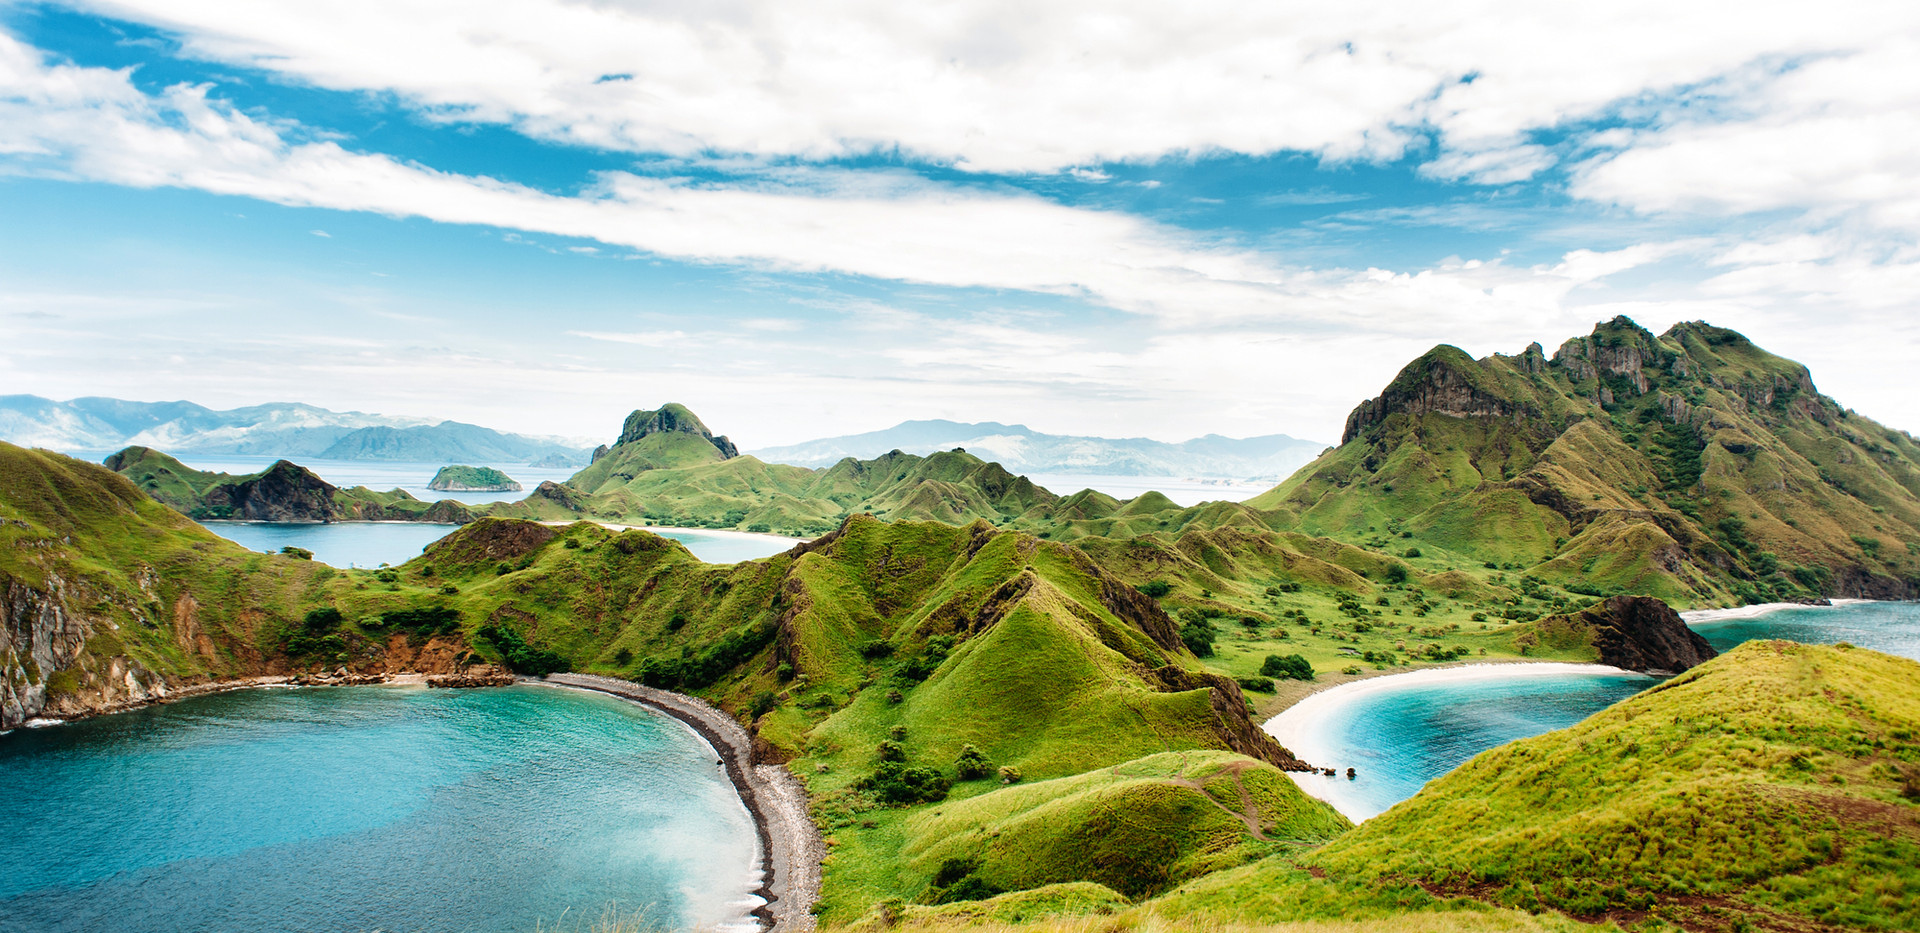 Padar Island, Komodo National Park in Ea